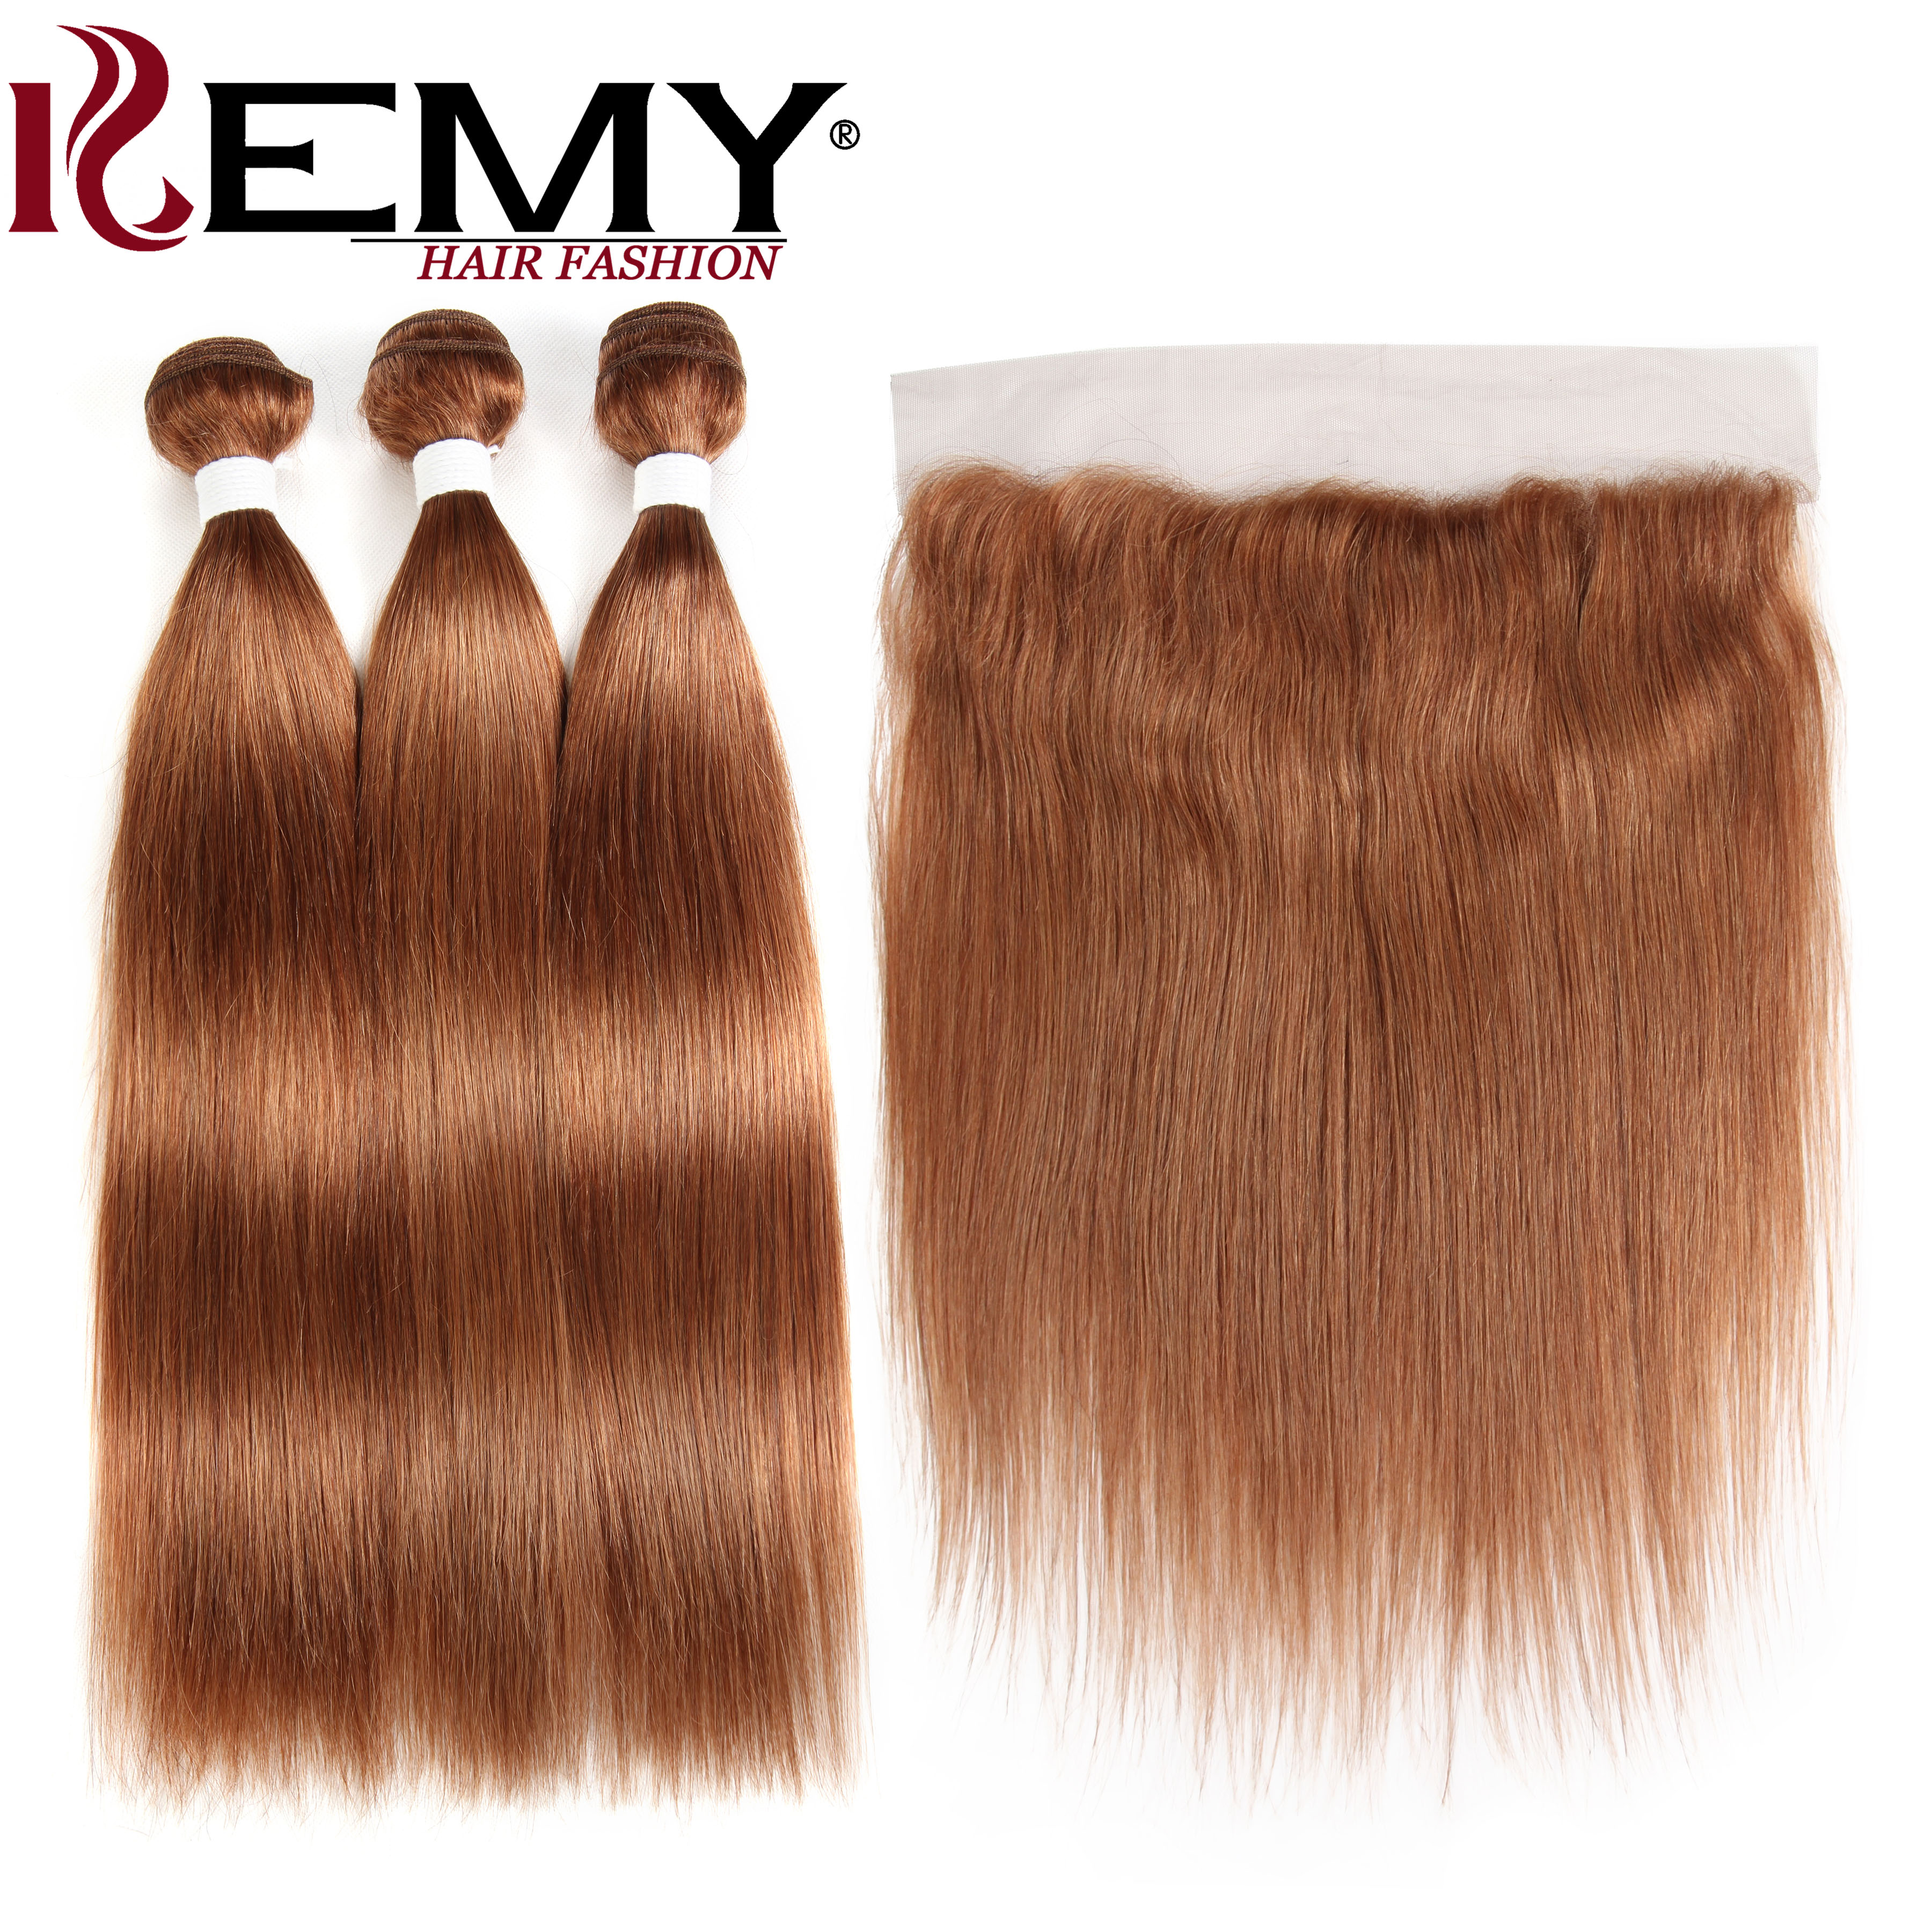 KEMY HAIR Pre-Colored Brazilian Straight Human Hair 4 Bundles With Lace Frontal Closure 4*13  Non-Remy Human Hair Weaves 99J#